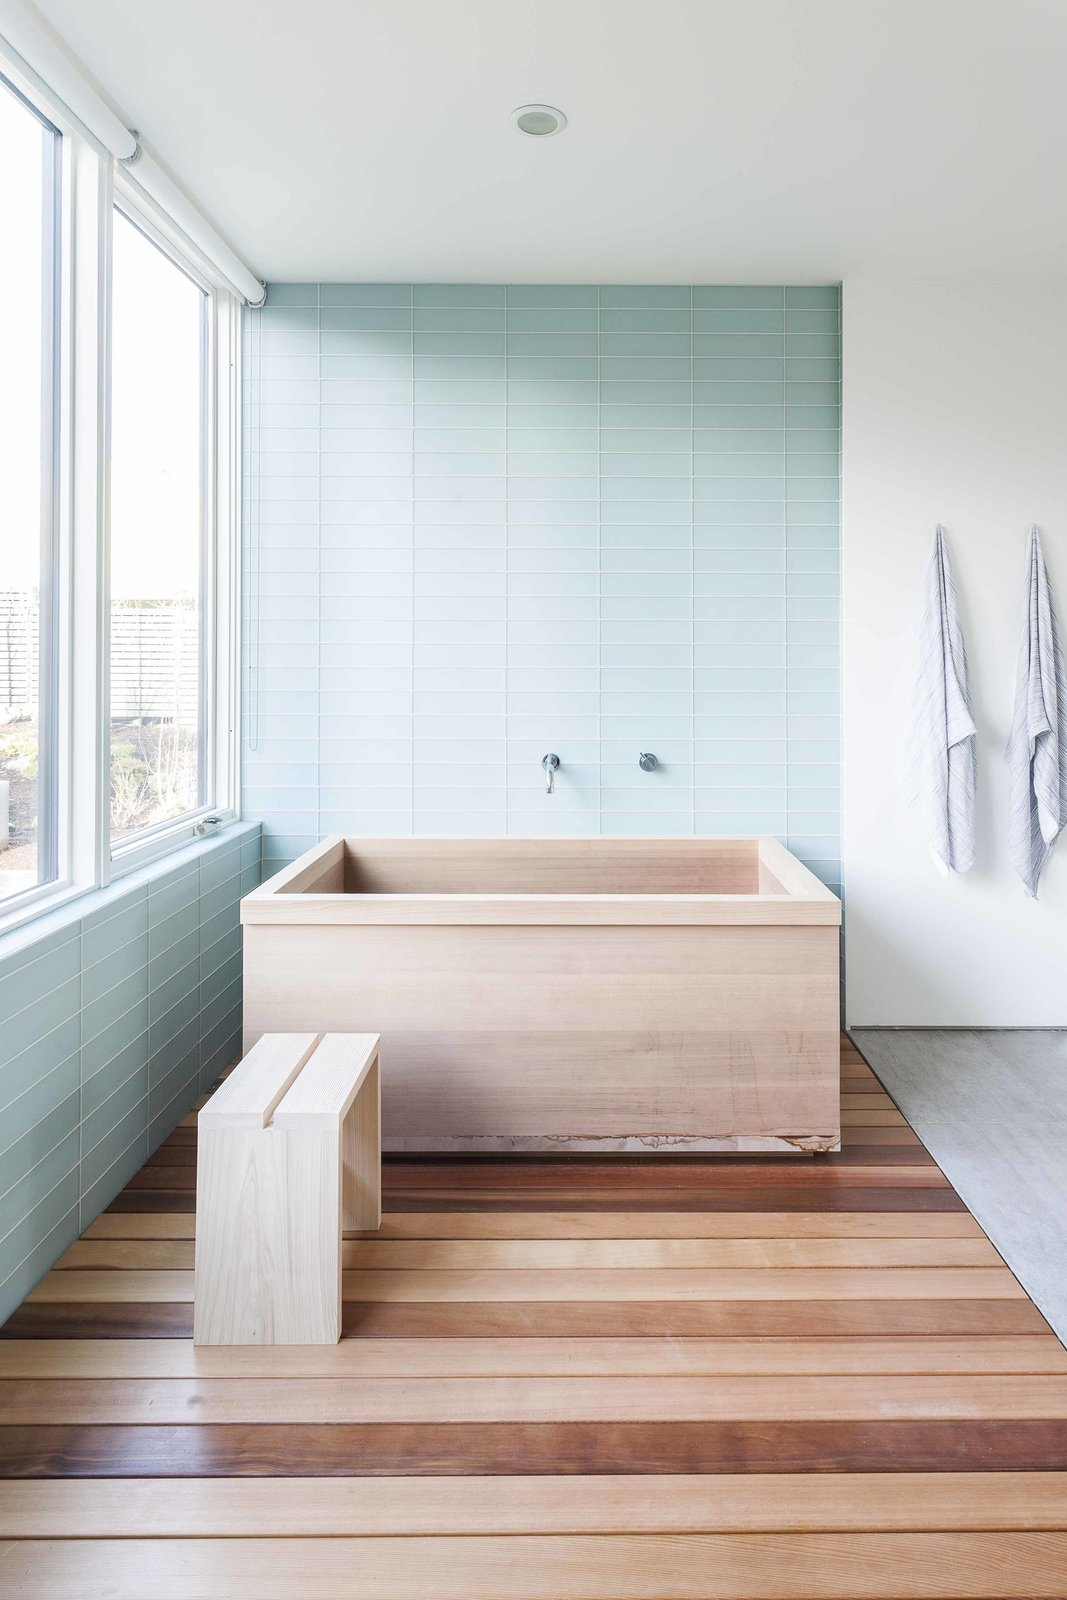 The custom cedar tub, fabricated by Dovetail, elegantly fits into this master bathroom.